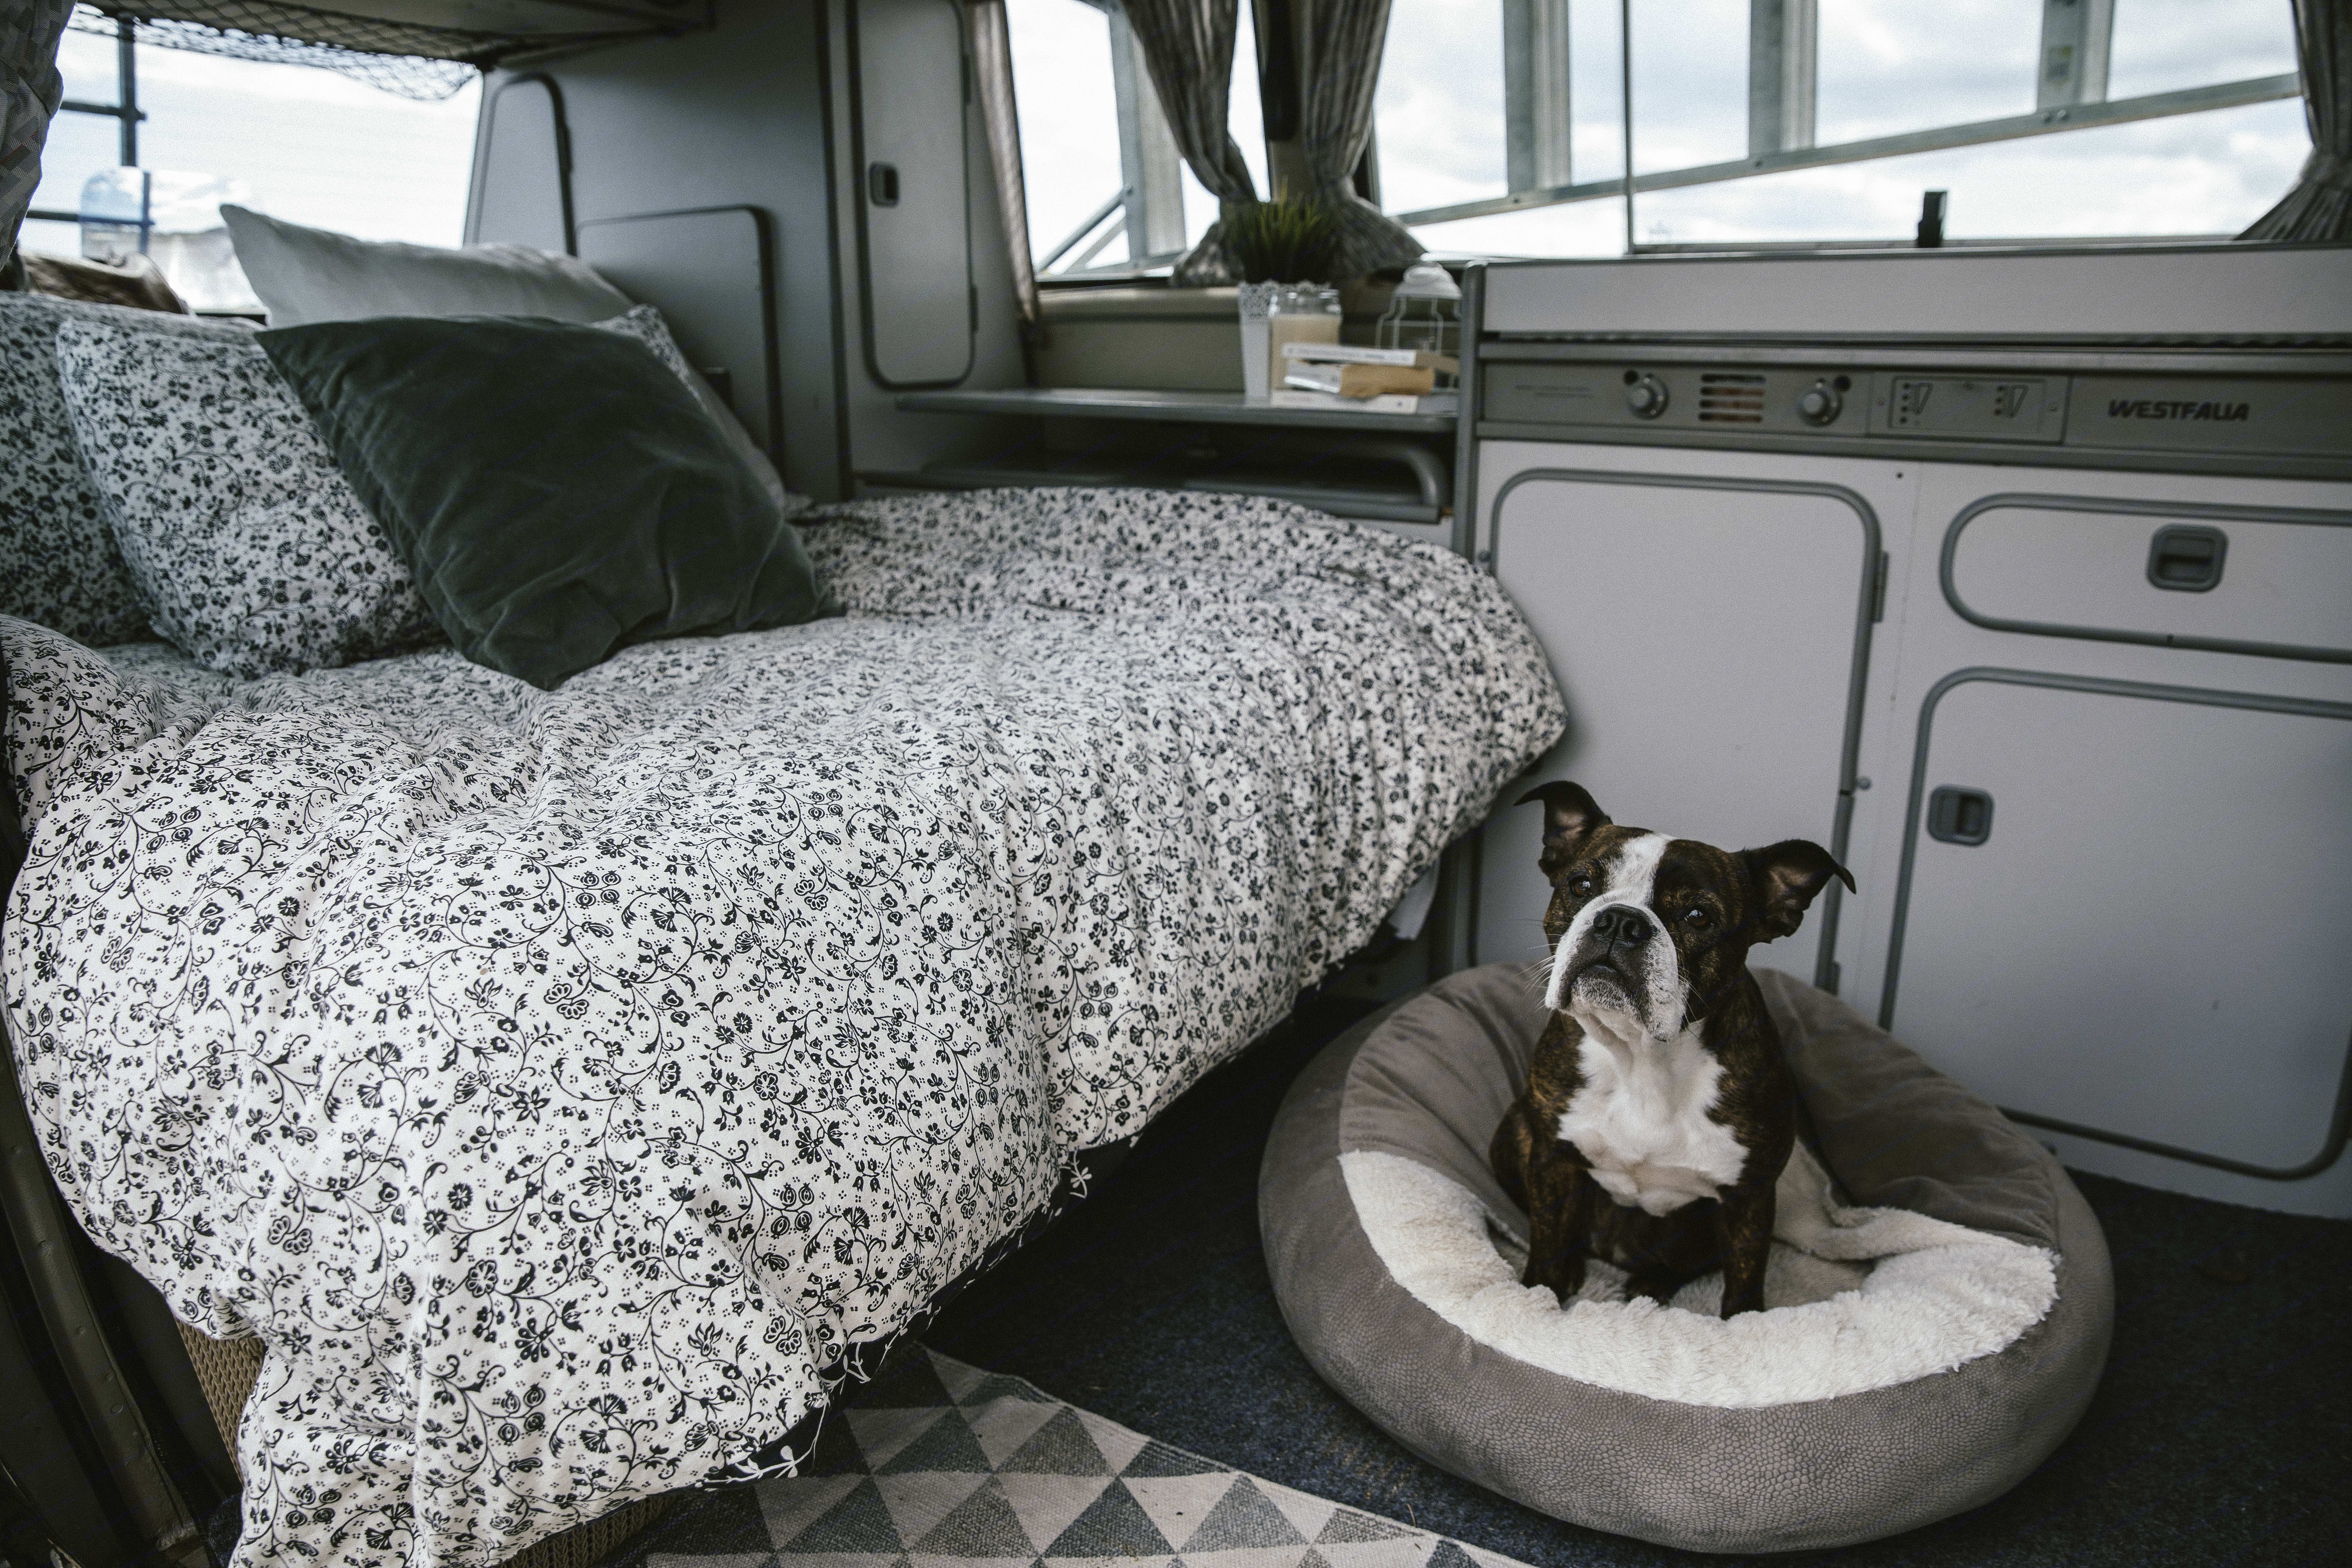 Your dog, are for sure, welcome for a little fee of 40$. I need to clean very deeply to remove all the trace of your badass copilot dog...in case someone are allergic after you. Like this everyone can enjoy there roadtrip ;). Volkswagen T3 Westfalia 1987